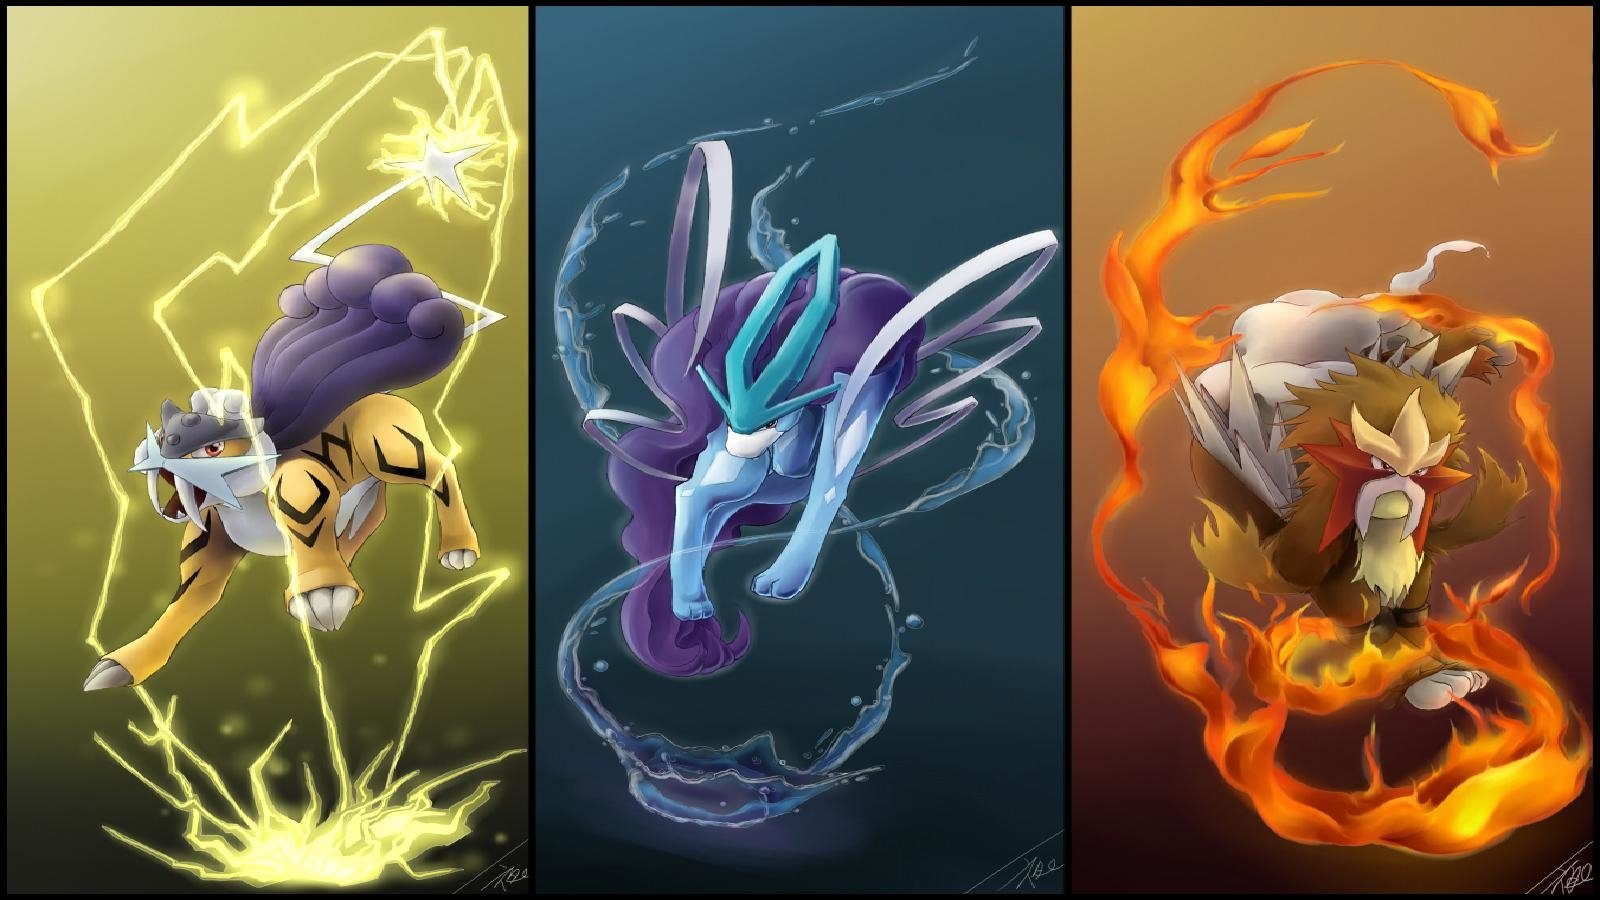 98 Legendary Pokemon Hd Wallpapers Background Images Wallpaper Abyss